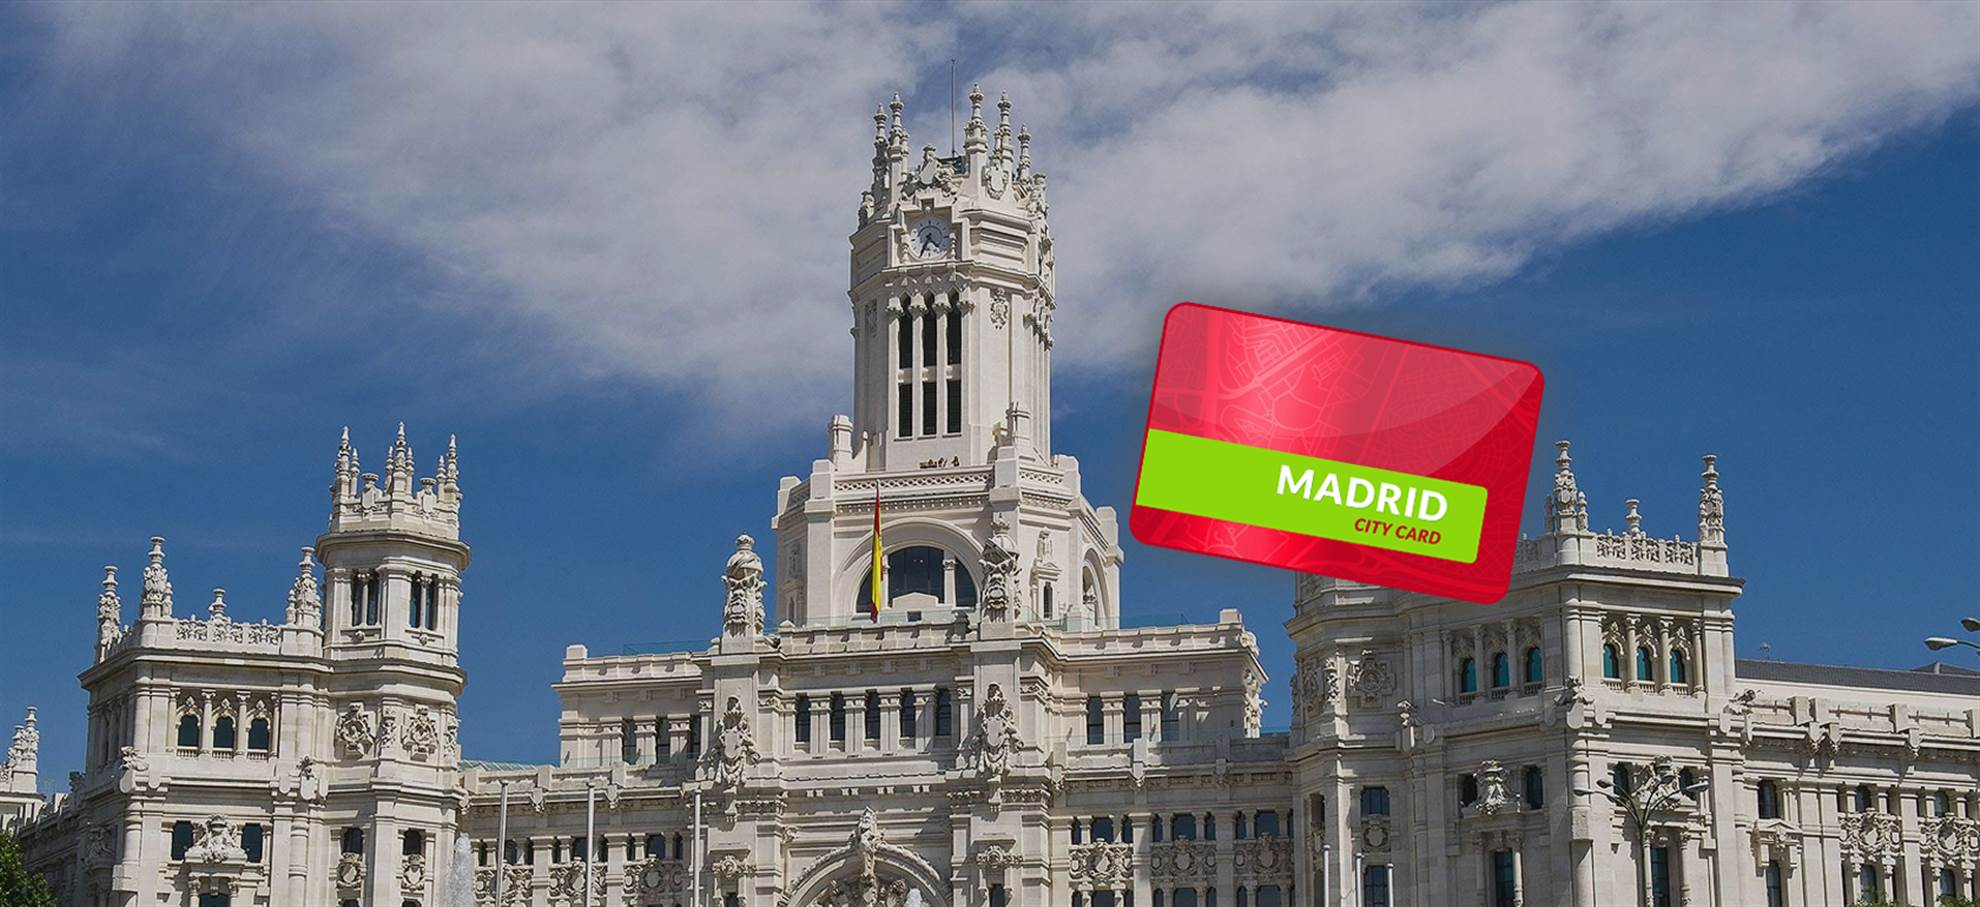 Madrid City Pass (Prado Museum, Koninklijk Paleis, Optioneel OV-Kaart)